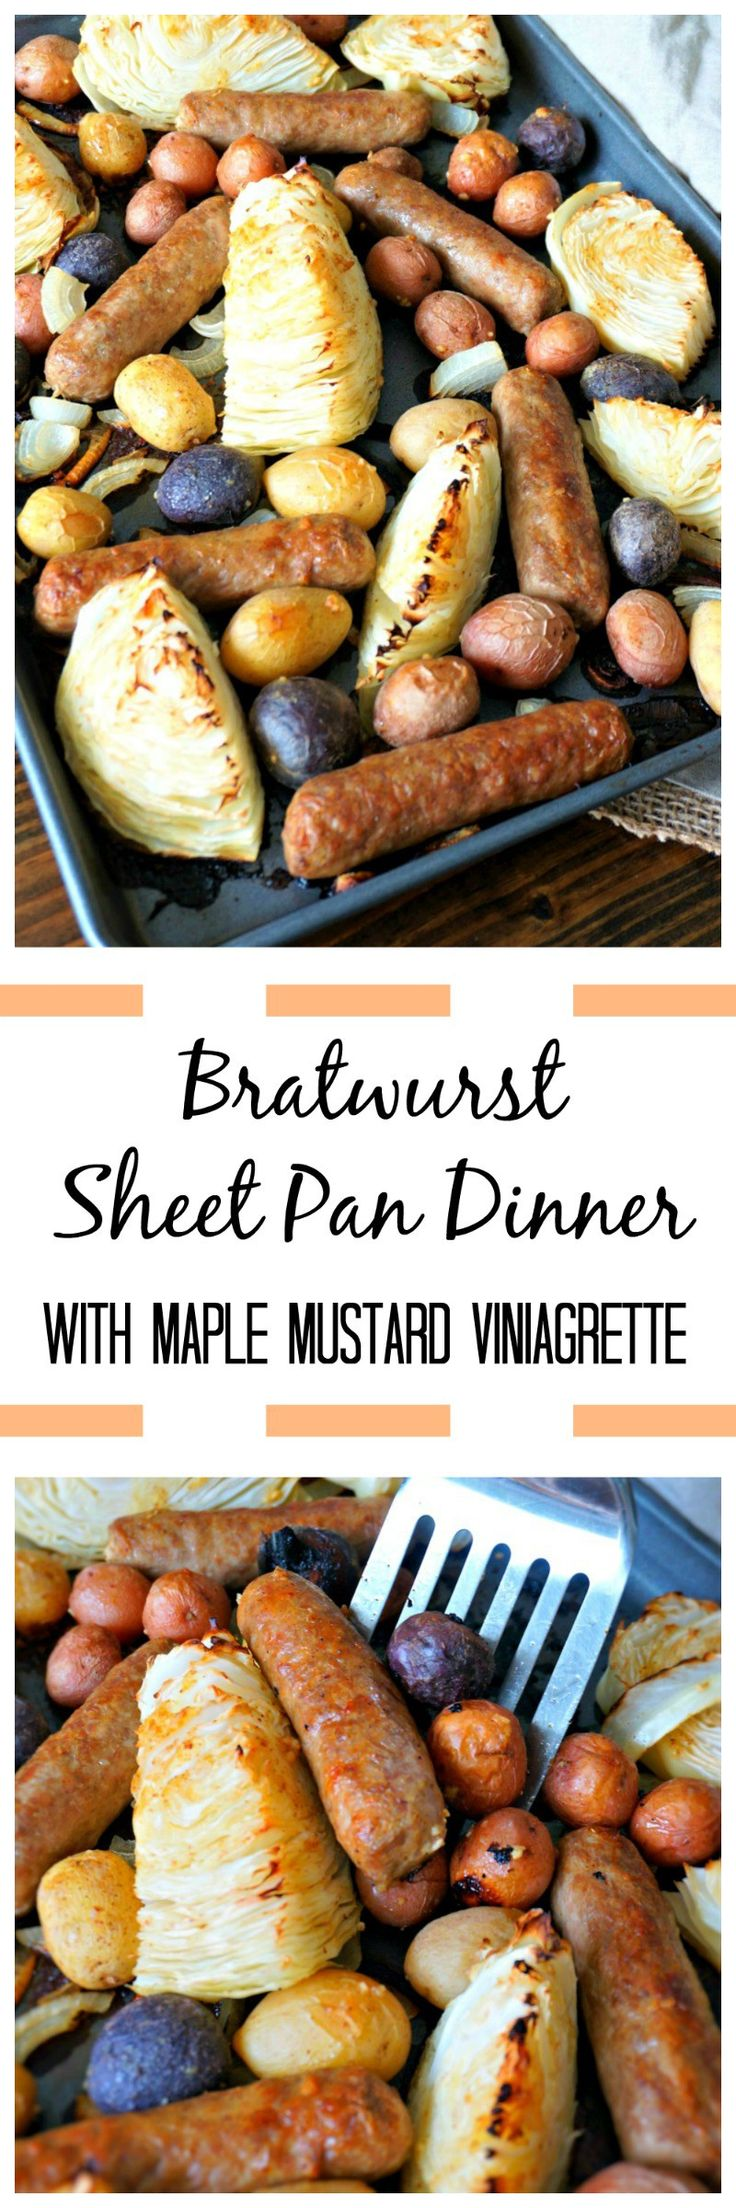 Sausage and Potato Sheet Pan Dinner: Bratwurst, potatoes, onions, and cabbage are roasted with a mustard maple vinaigrette for an easy meal. #SundaySupper